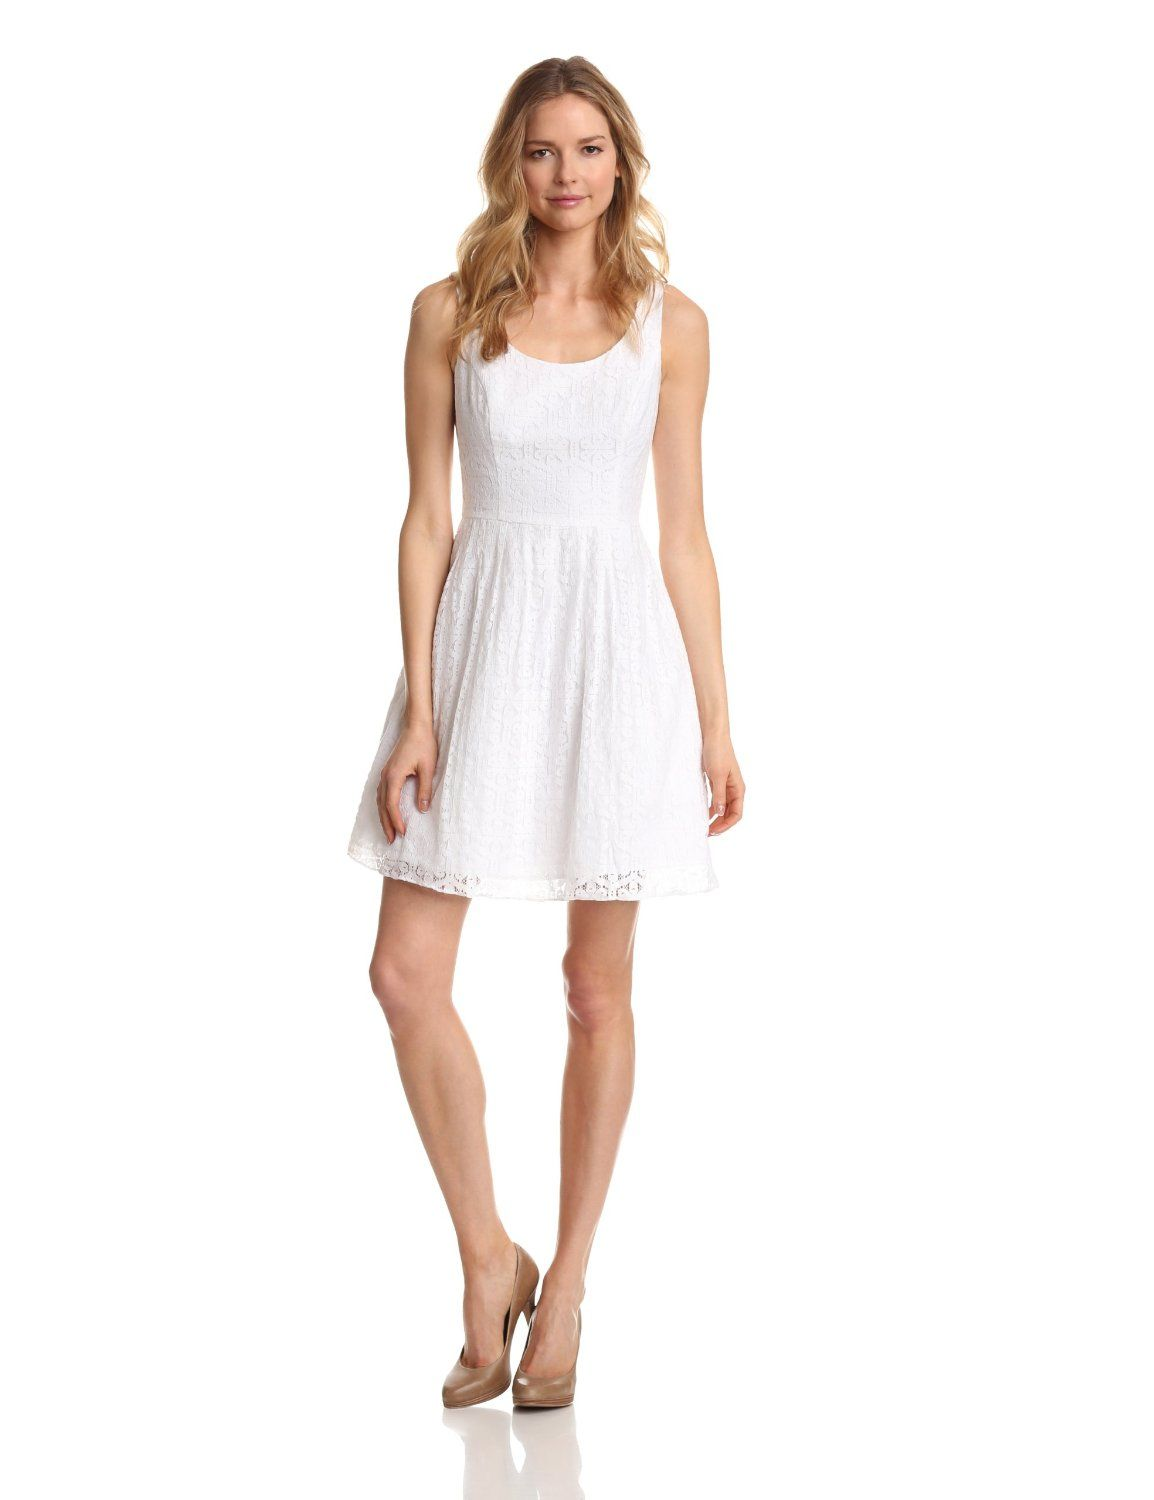 Dresses White for women pictures images